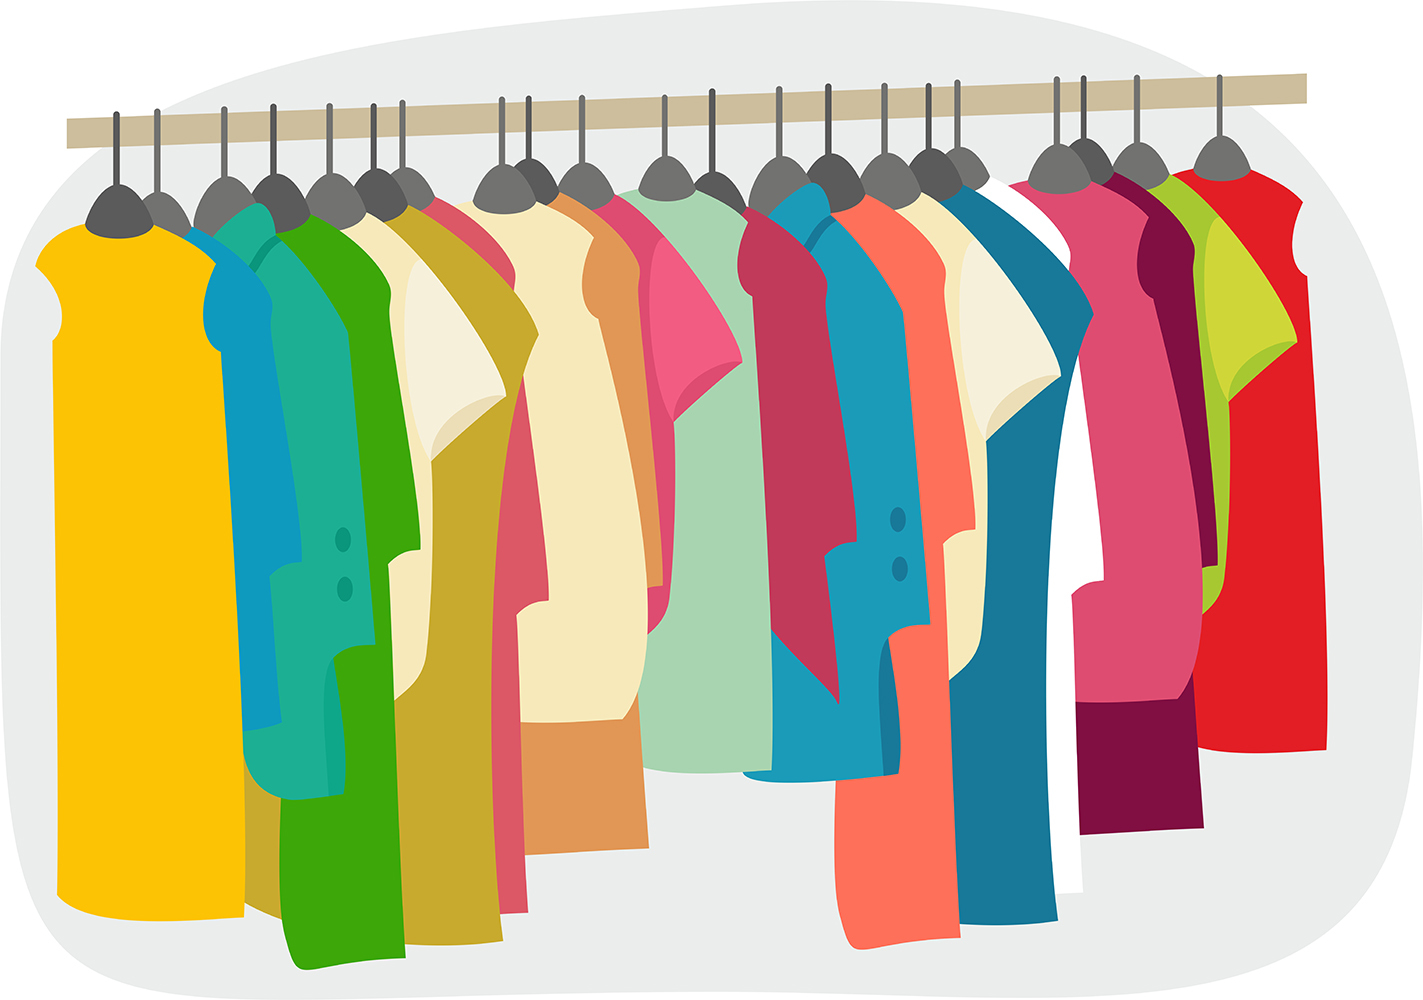 Lost and found clipart used clothes. Free cliparts download clip